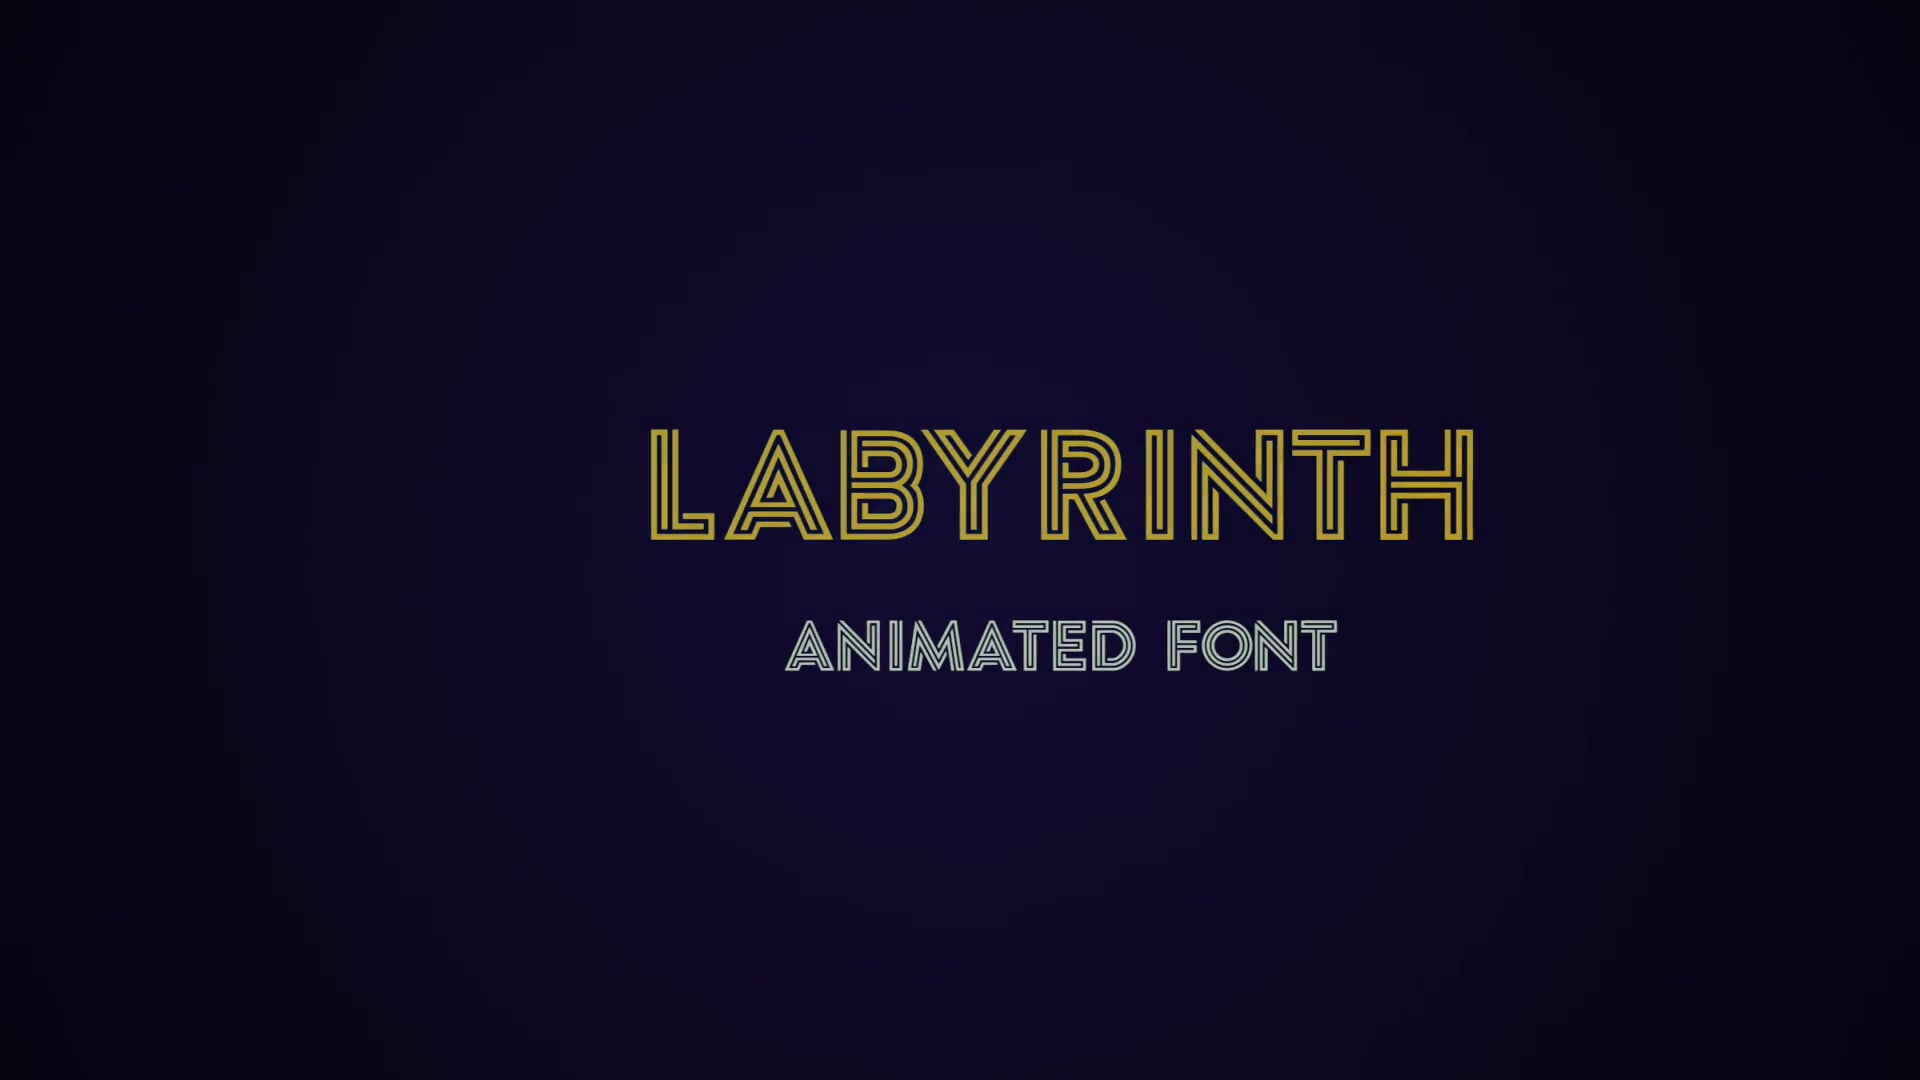 Labyrinth Animated Font - Download Videohive 18527773